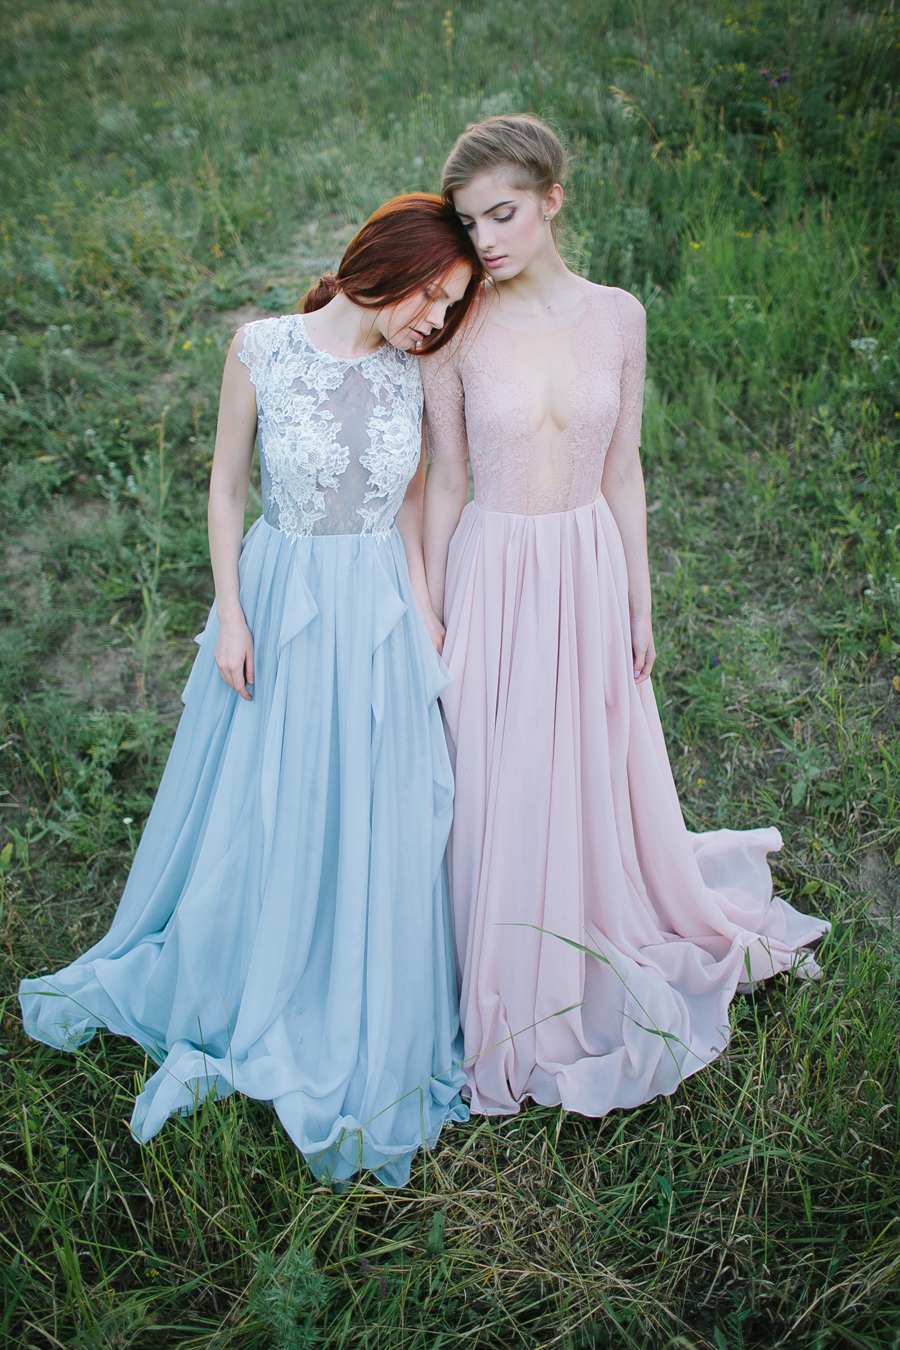 Funky Wedding Dress Etsy Image Collection